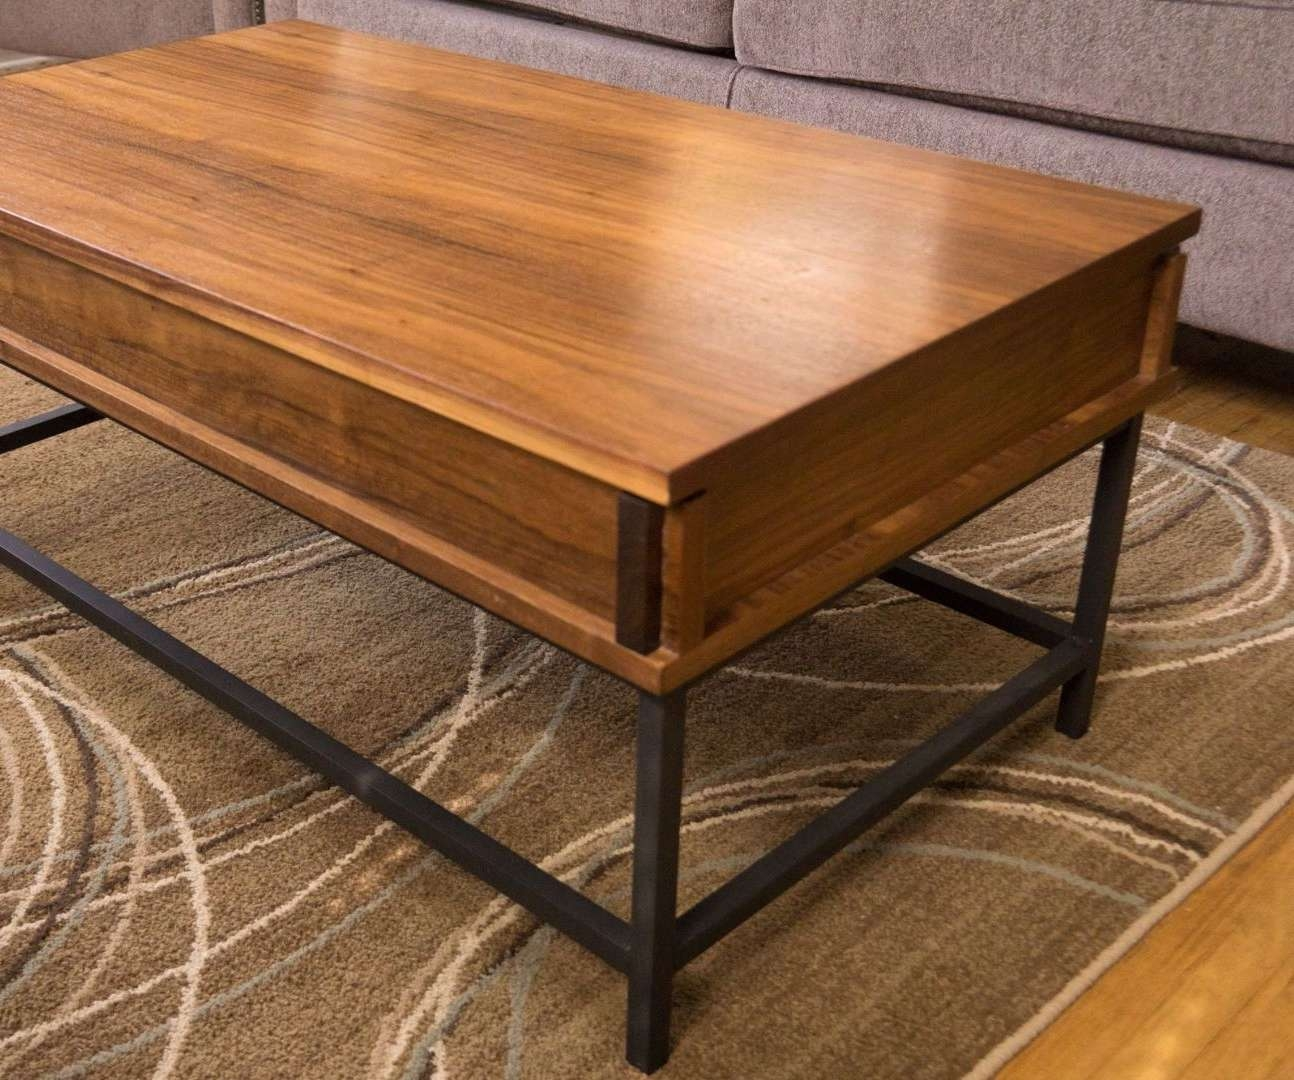 2017 Pop Up Top Coffee Tables Inside Coffee Tables : Hinges Door Pop Up Coffee Table Hardware Diy Lift (View 1 of 20)